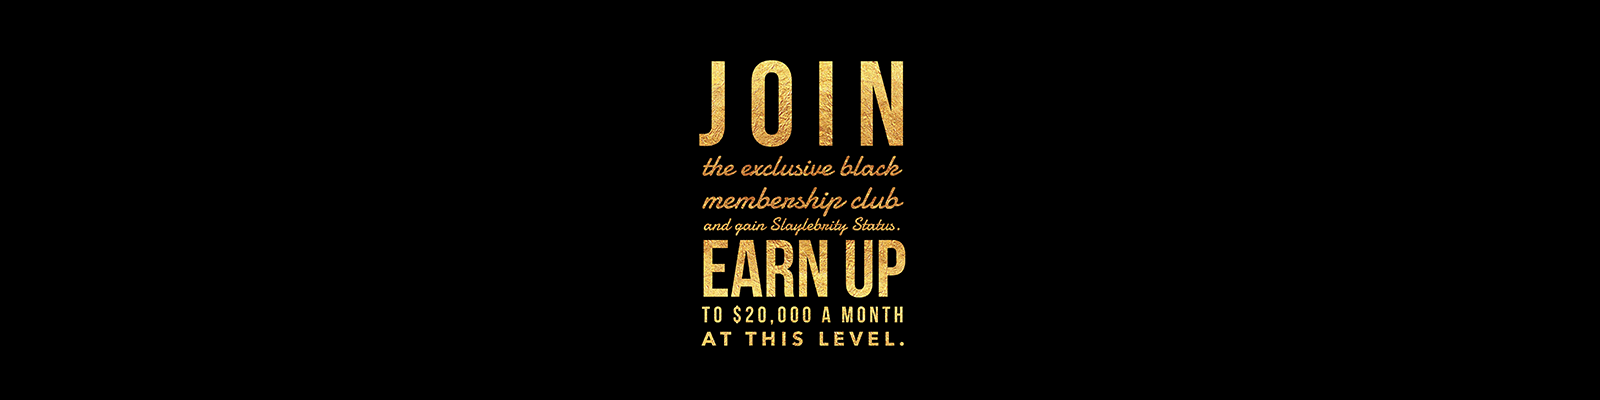 Join the exclusive membership club